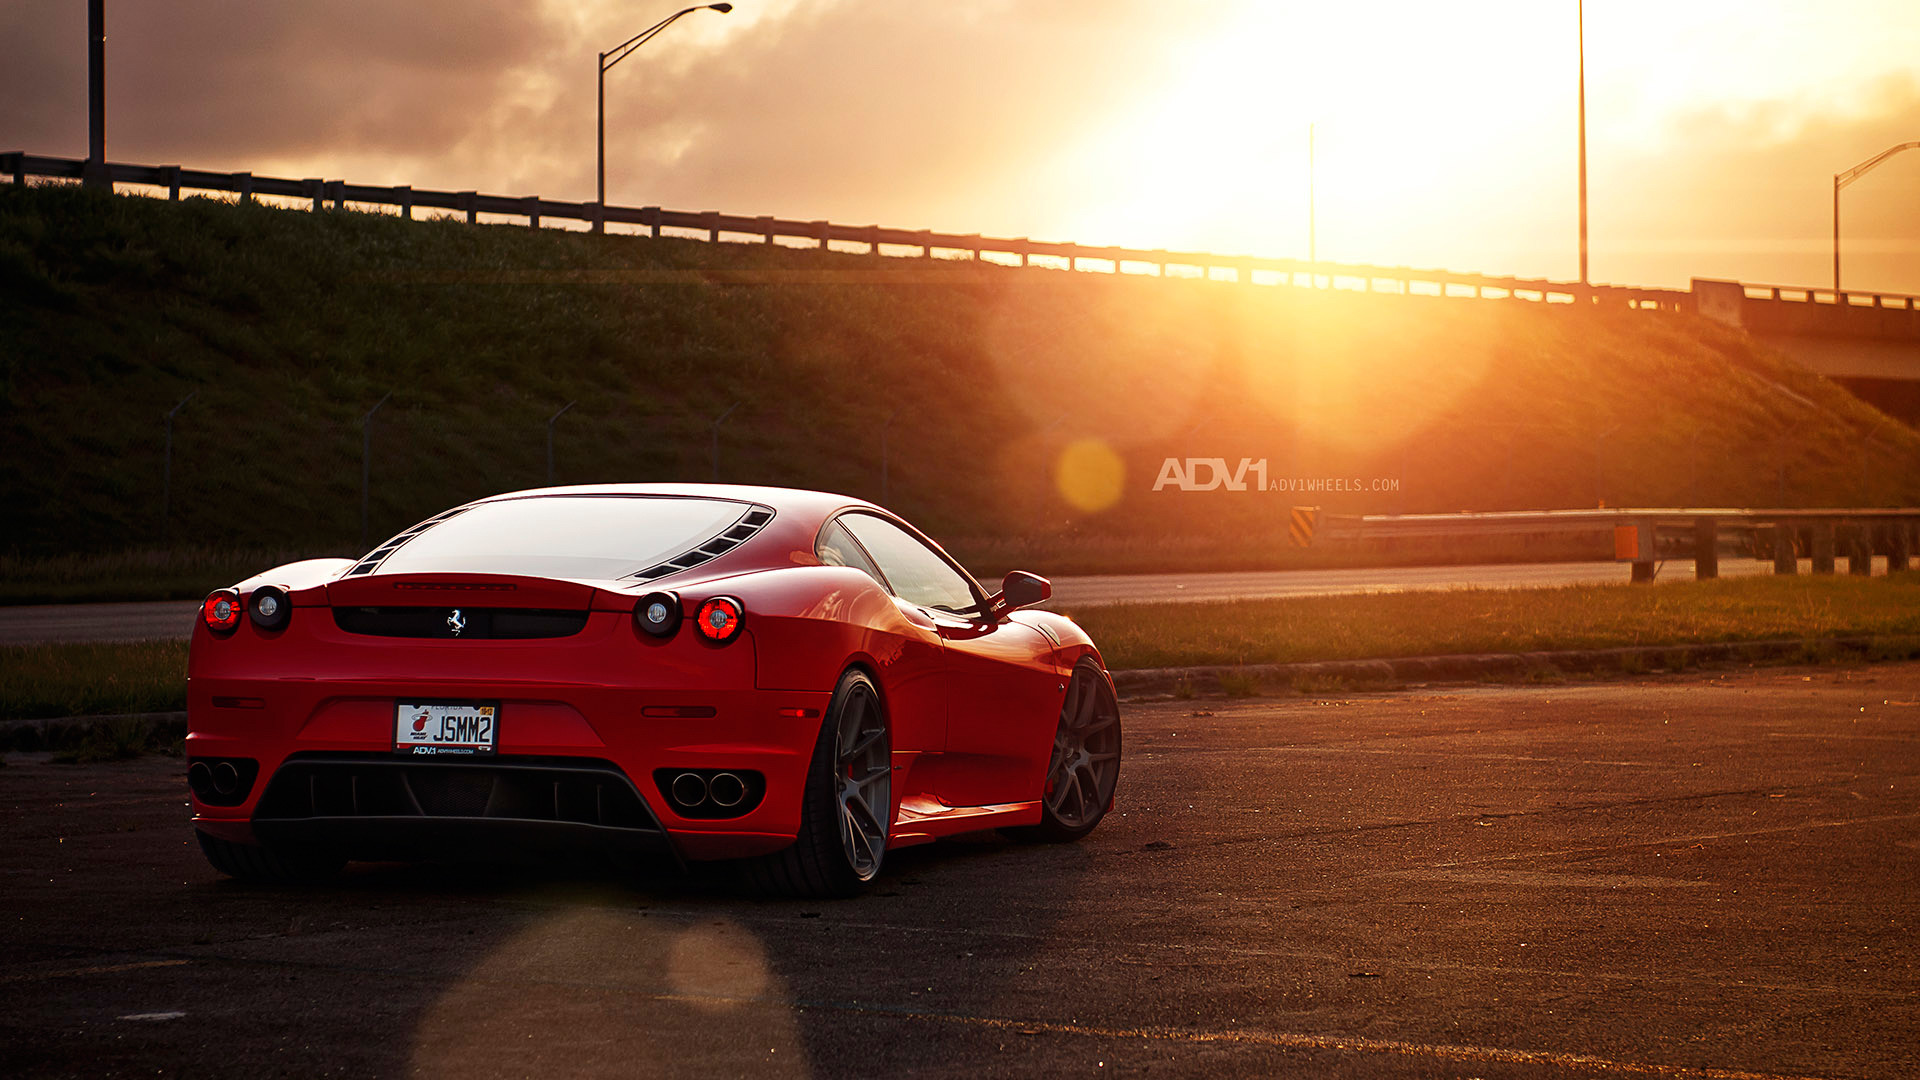 1920x1080 ... 42 HD Ferrari Wallpapers For Free Download